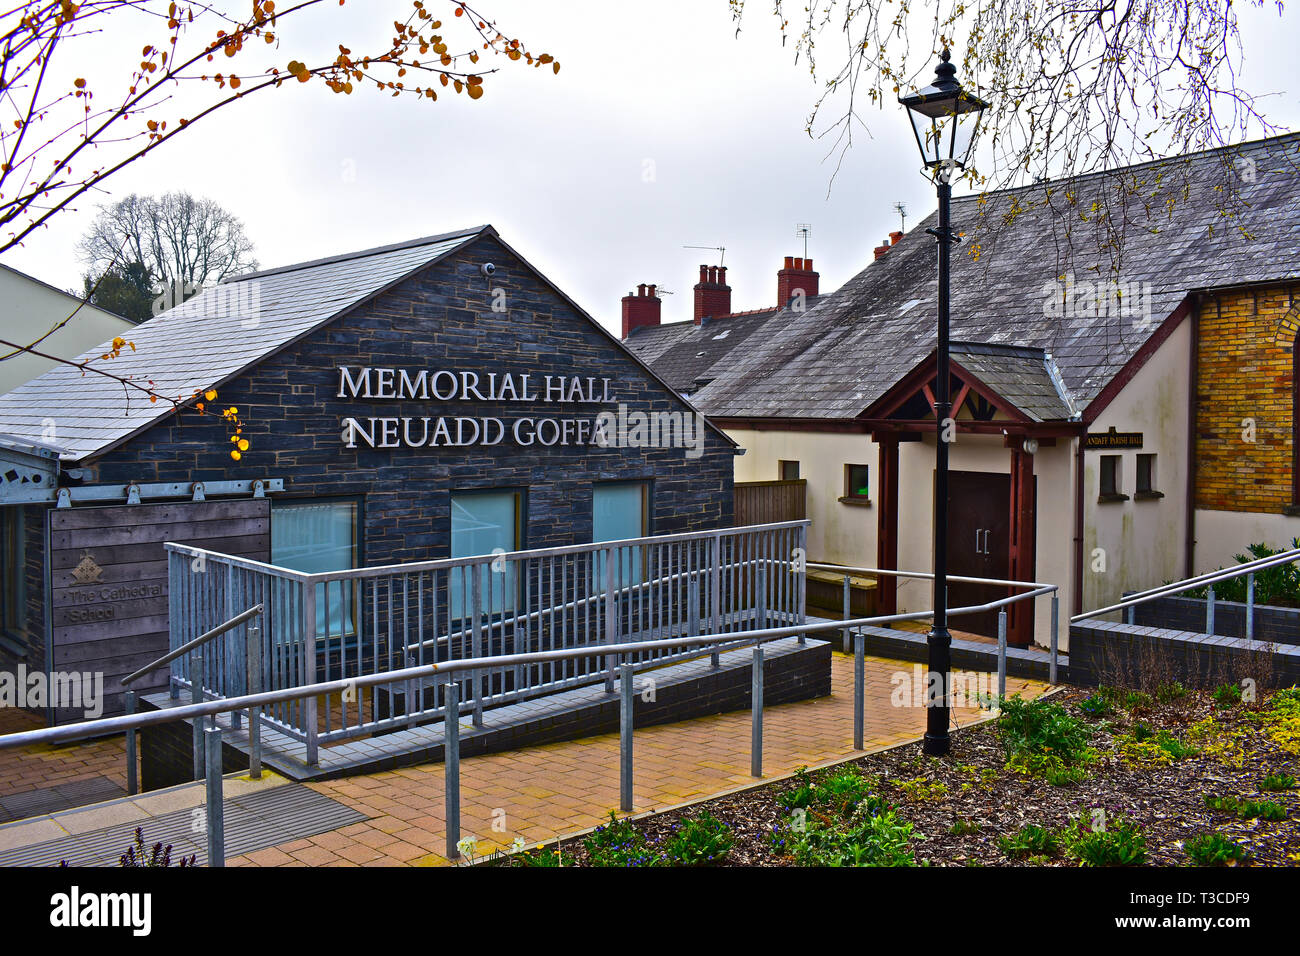 The Memorial Hall is located in the centre of the Village of Llandaff. Popular local venue with various meeting rooms and halls. - Stock Image